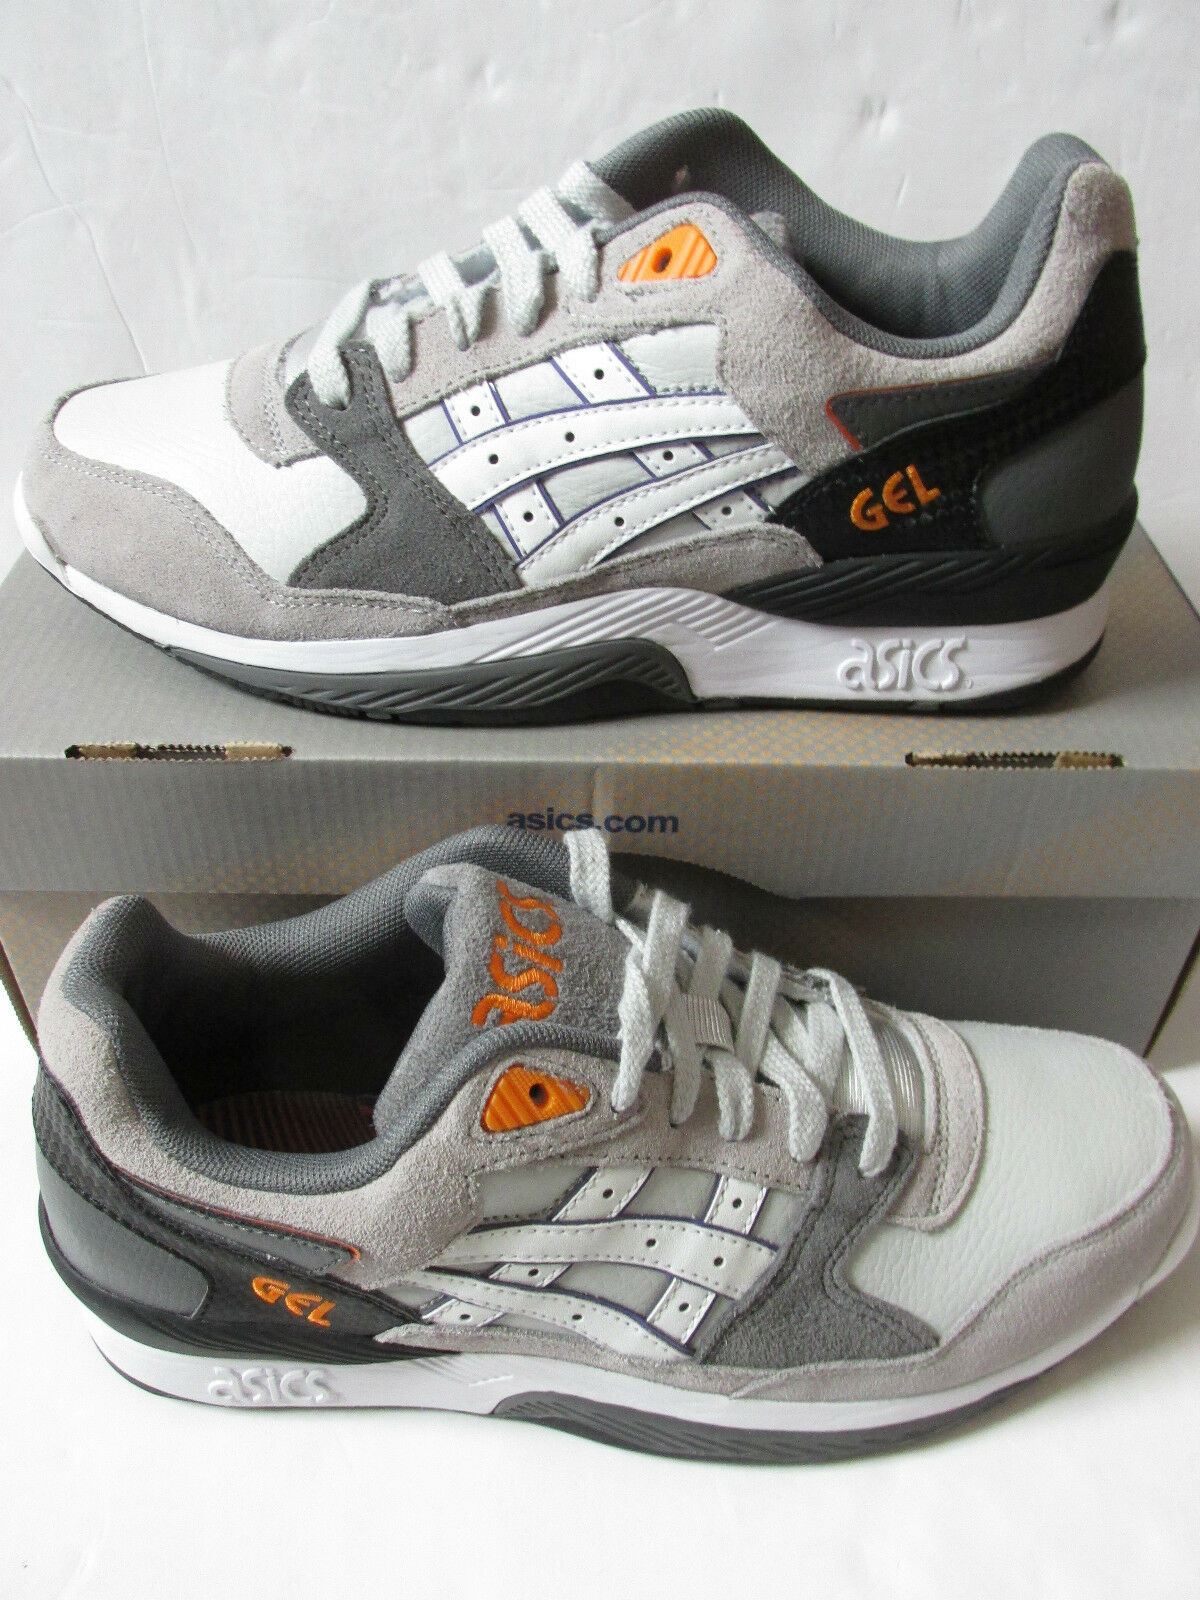 Asics Gt-Quick Baskets Hommes H420L 1010 Chaussures Baskets